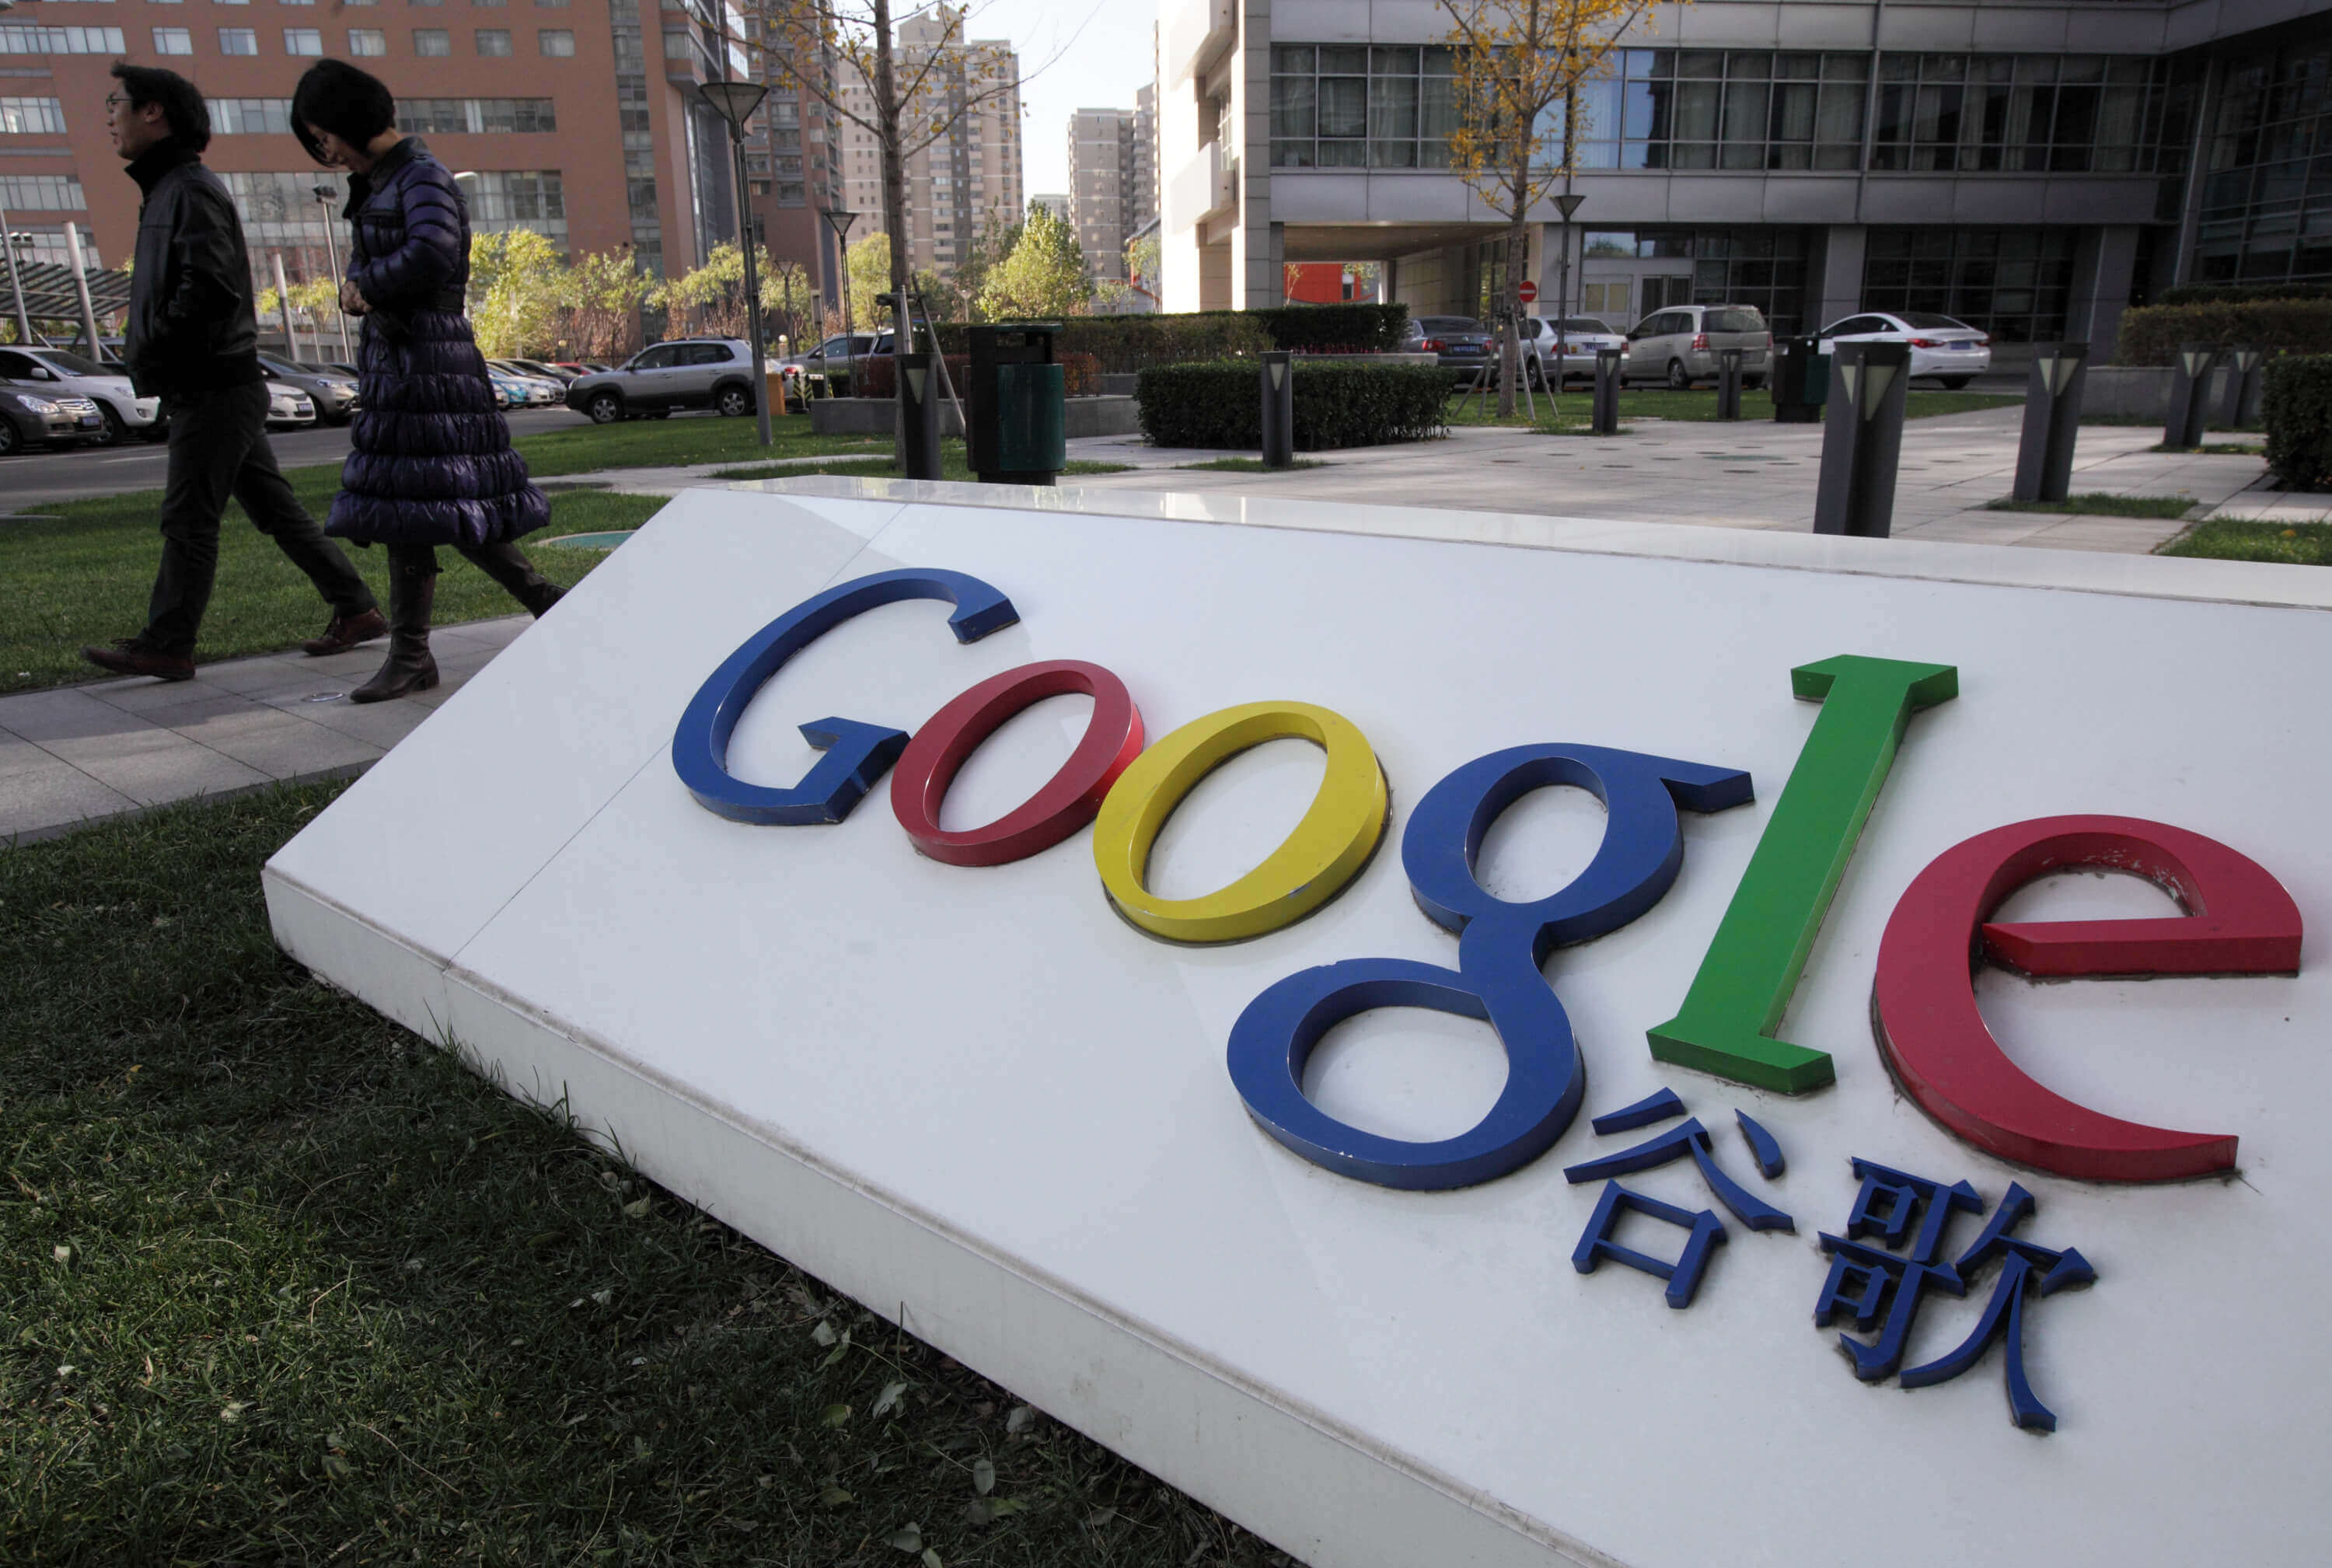 Disappointing: Google Makes Plan To Return To China With Censored Search Engine